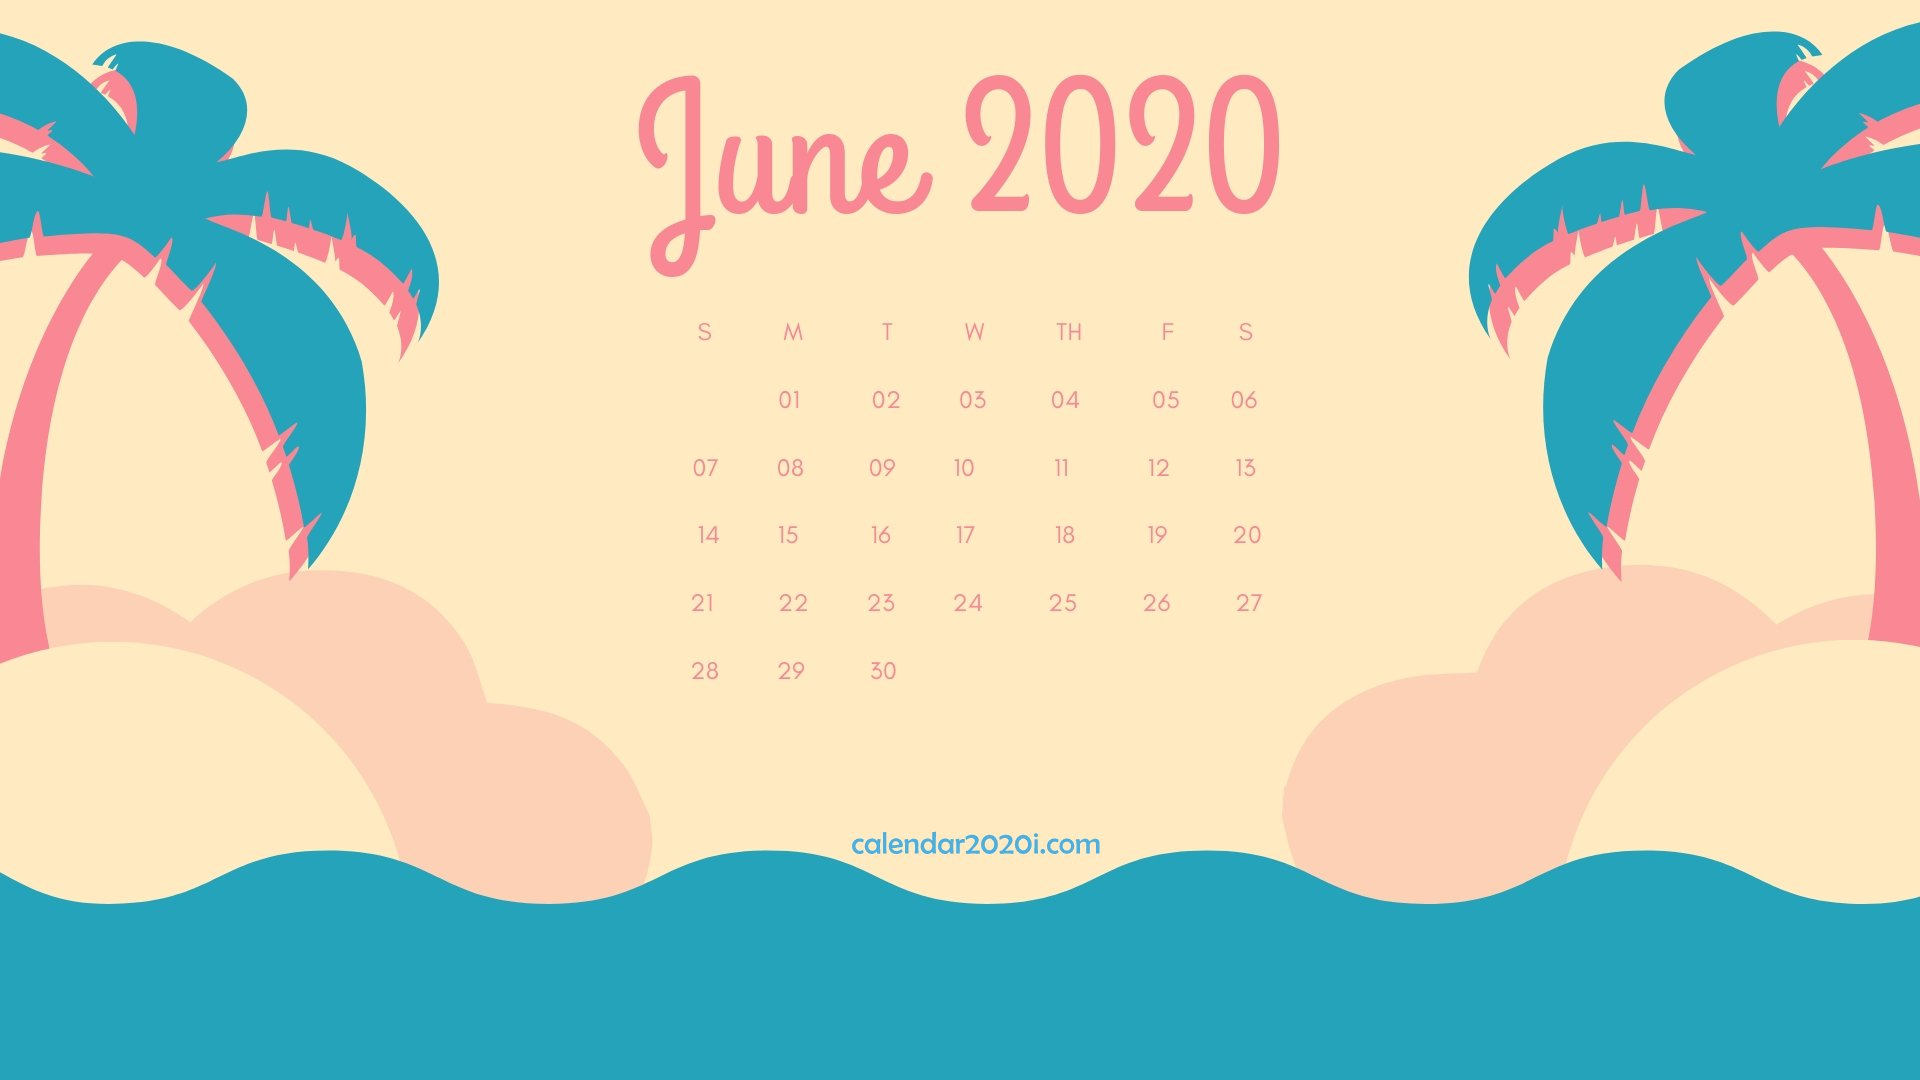 46] June 2020 Calendar Wallpapers on WallpaperSafari 1920x1080